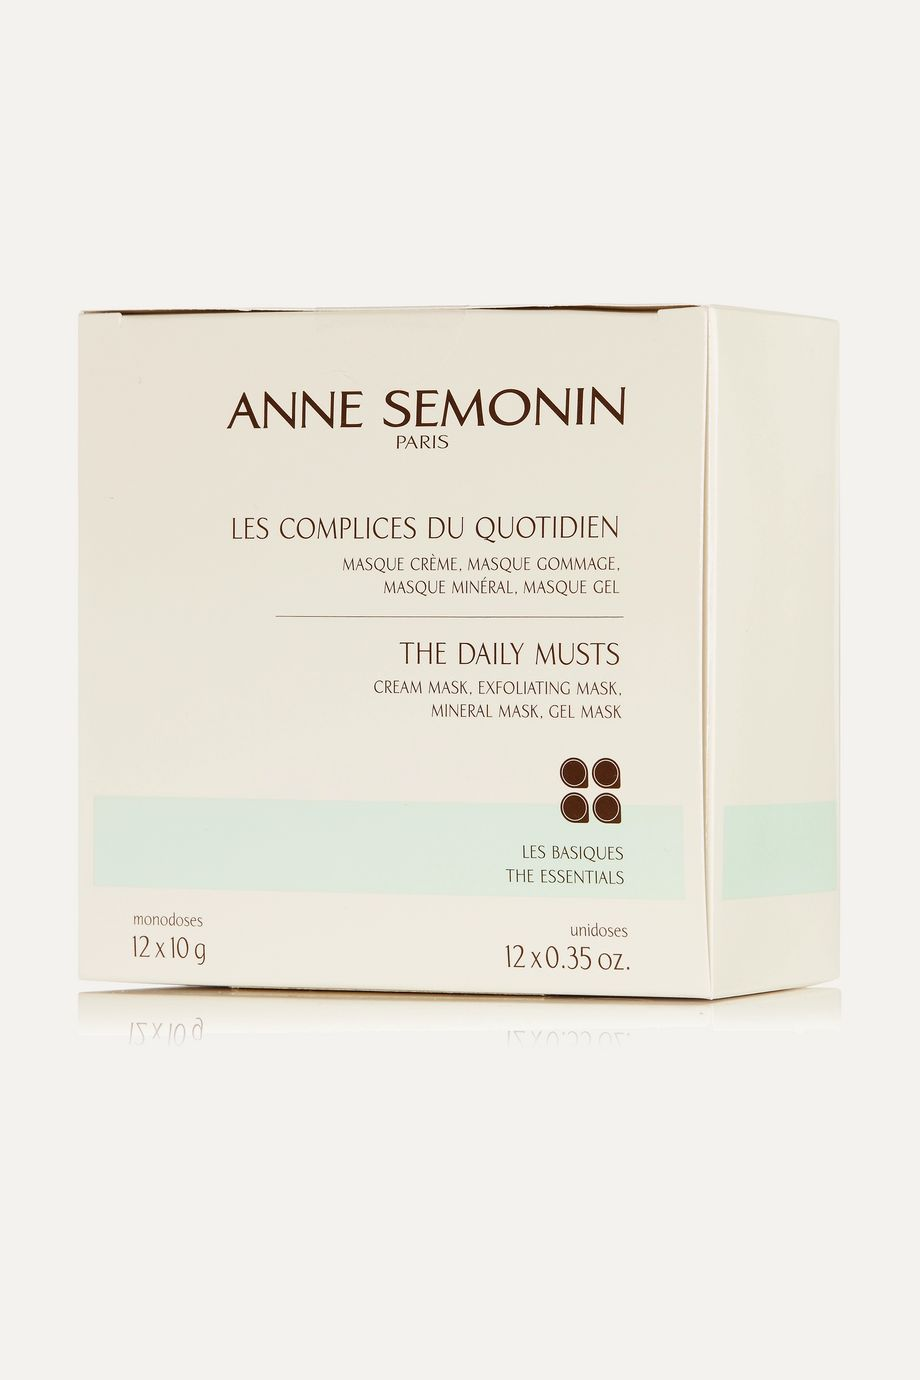 Anne Semonin The Daily Musts Mask Coffret, 12 x 10g